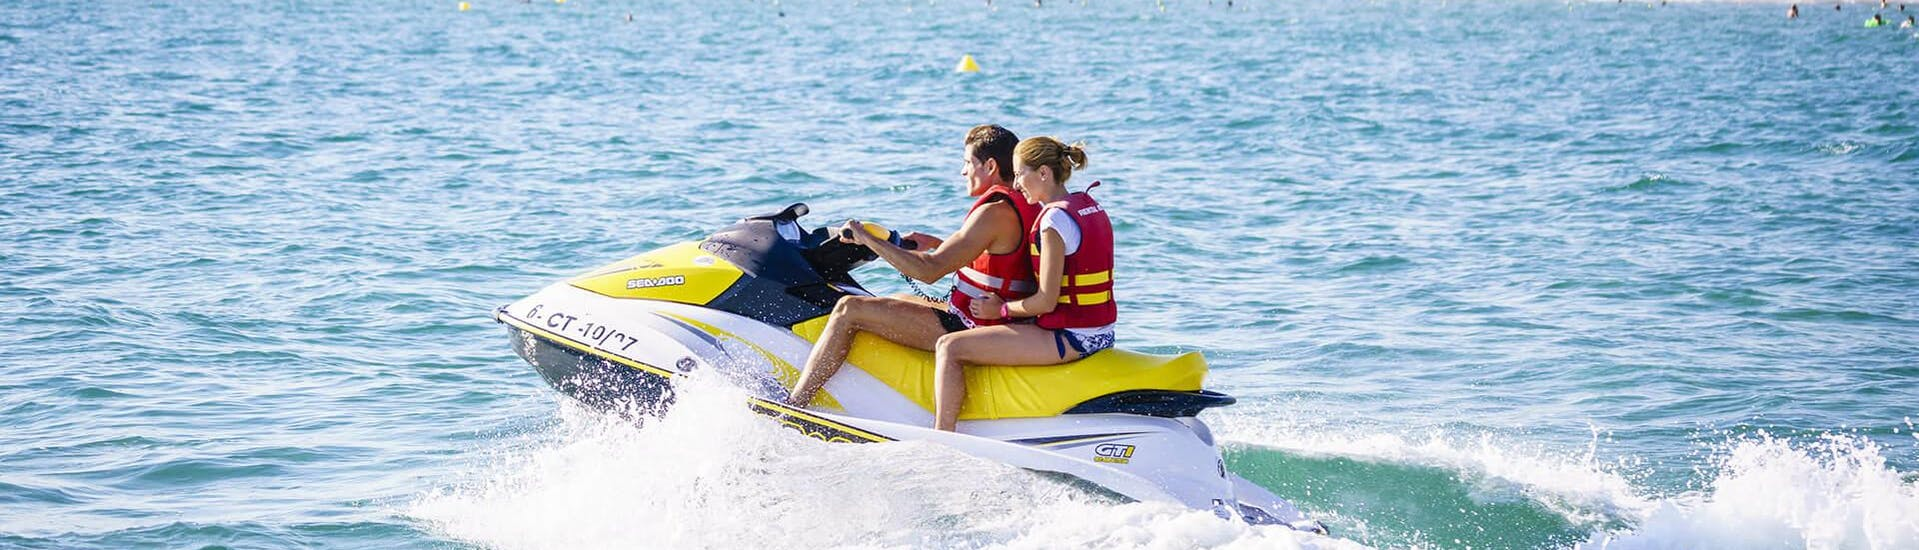 Two friends enjoy the jet ski tour in the pleasant sea together with Estació Nàutica Costa Daurada during the Jet Ski Rental in Salou or Cambrils.